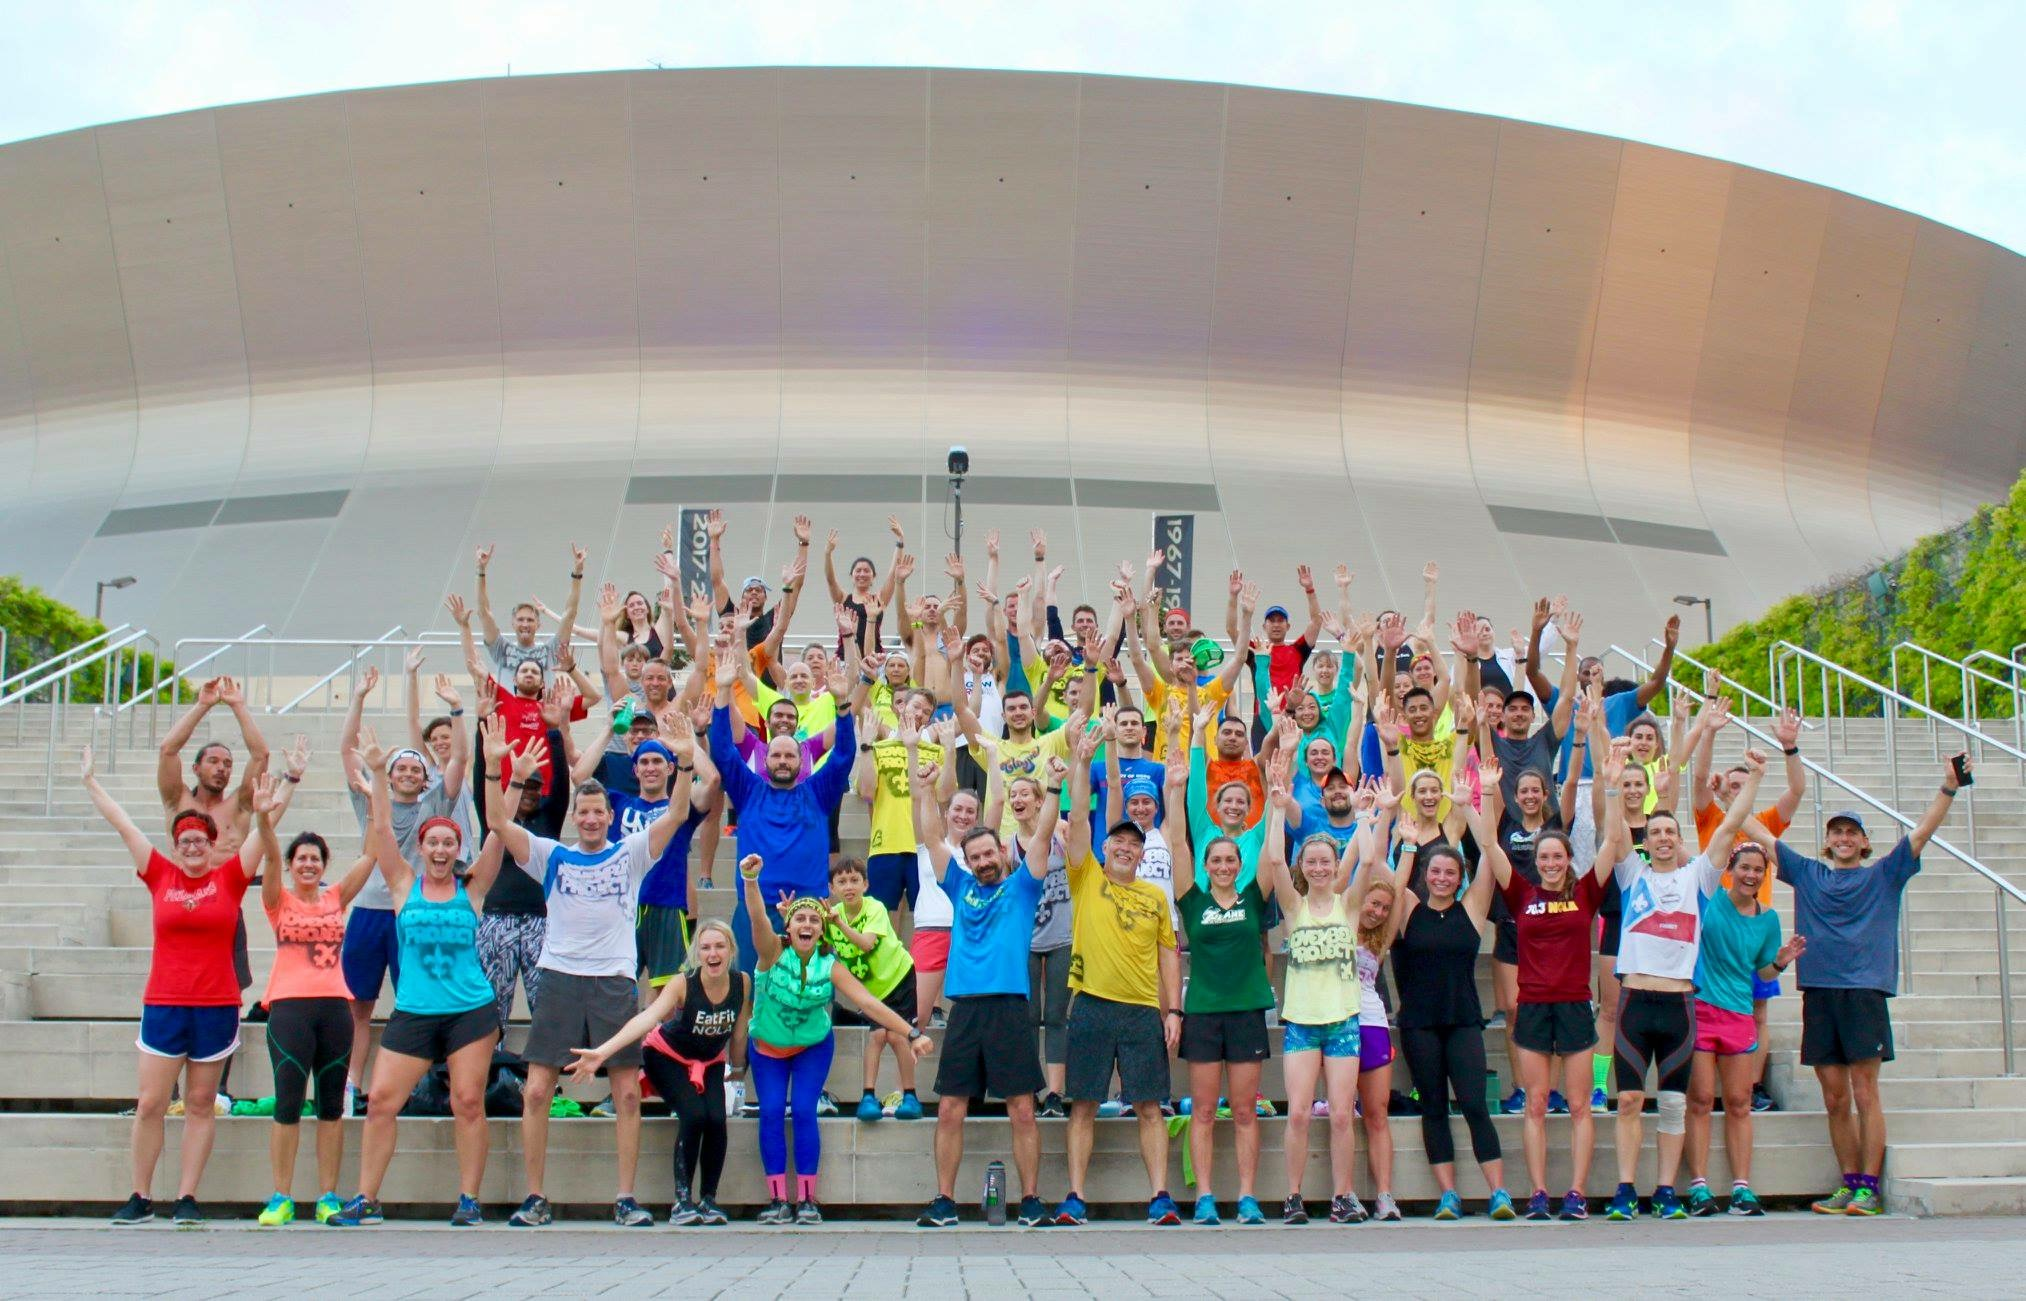 Run This City: Five Unique New Orleans Clubs for Runners